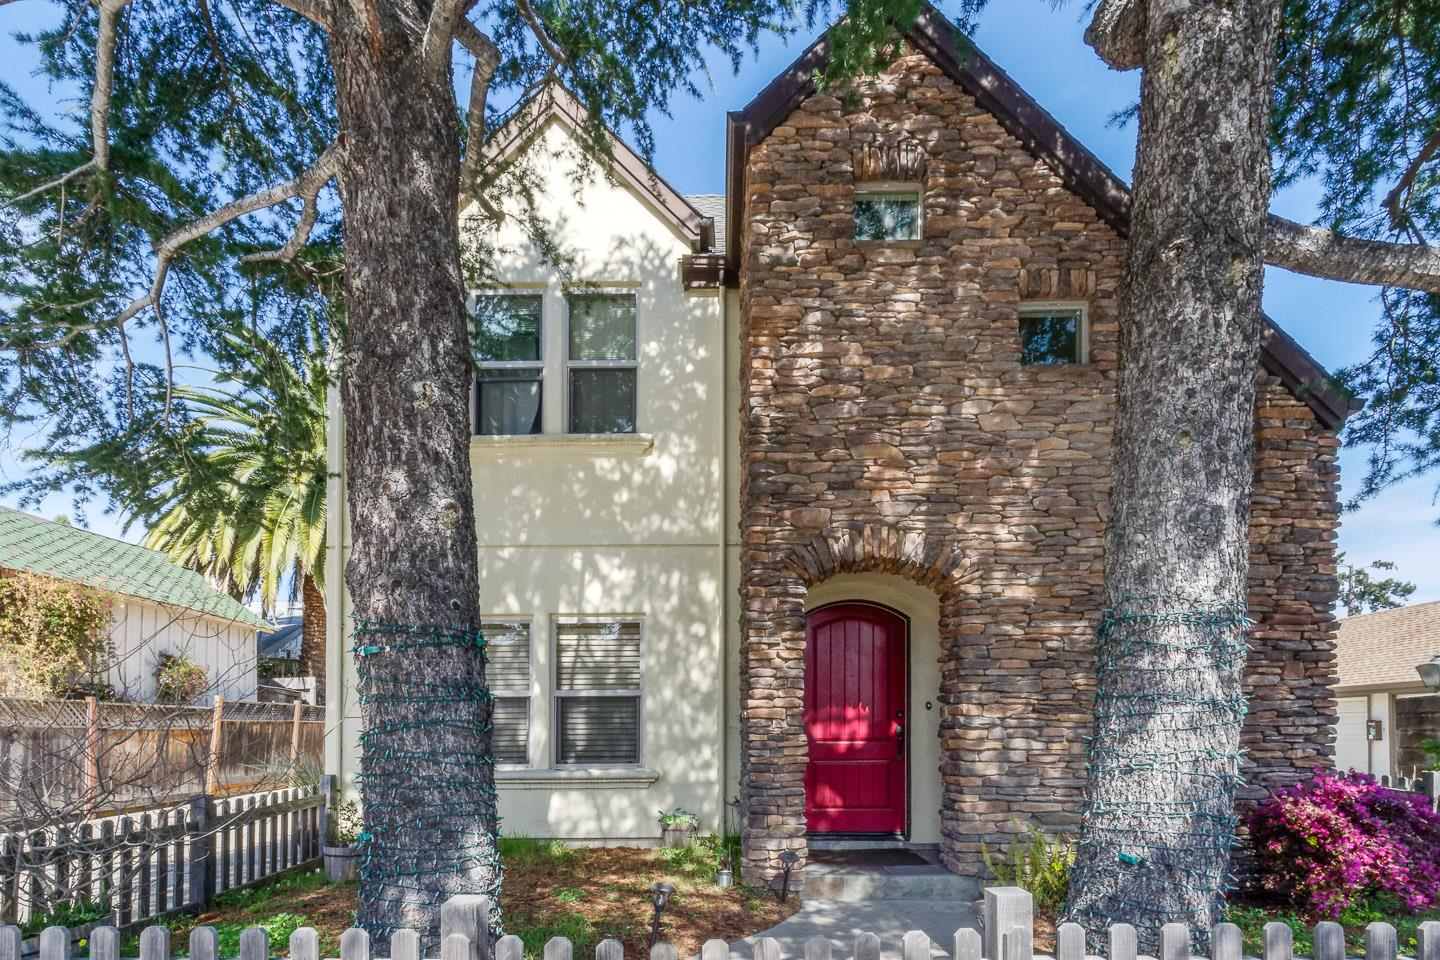 This cozy townhome has a unique stonework façade, with an arched entry. The door opens to a living room w/large windows, laminate floors, & recessed lights. A kitchen w/maple cabinets is open to the living area, w/its own recessed lights, a breakfast bar w/pendant lights illuminating the granite counter, & stainless steel appliances. Adjacent is a separate laundry room w/access to a one-car garage, as well as a half-bath. A carport adjacent to the garage offers additional protected space for parking. The unique stonework outside gives this home a one-of-a-kind & easily recognizable exterior. Inside, the more traditional layout features communal living spaces downstairs & bedrooms & baths upstairs. Upstairs are three bedrooms and two full baths. The vibrant neighborhood includes many amenities & local landmarks including Whole Foods, Shoppers Corner, The Buttery & restaurants. The location provides easy access to downtown Santa Cruz, local beaches, & commuter routes.